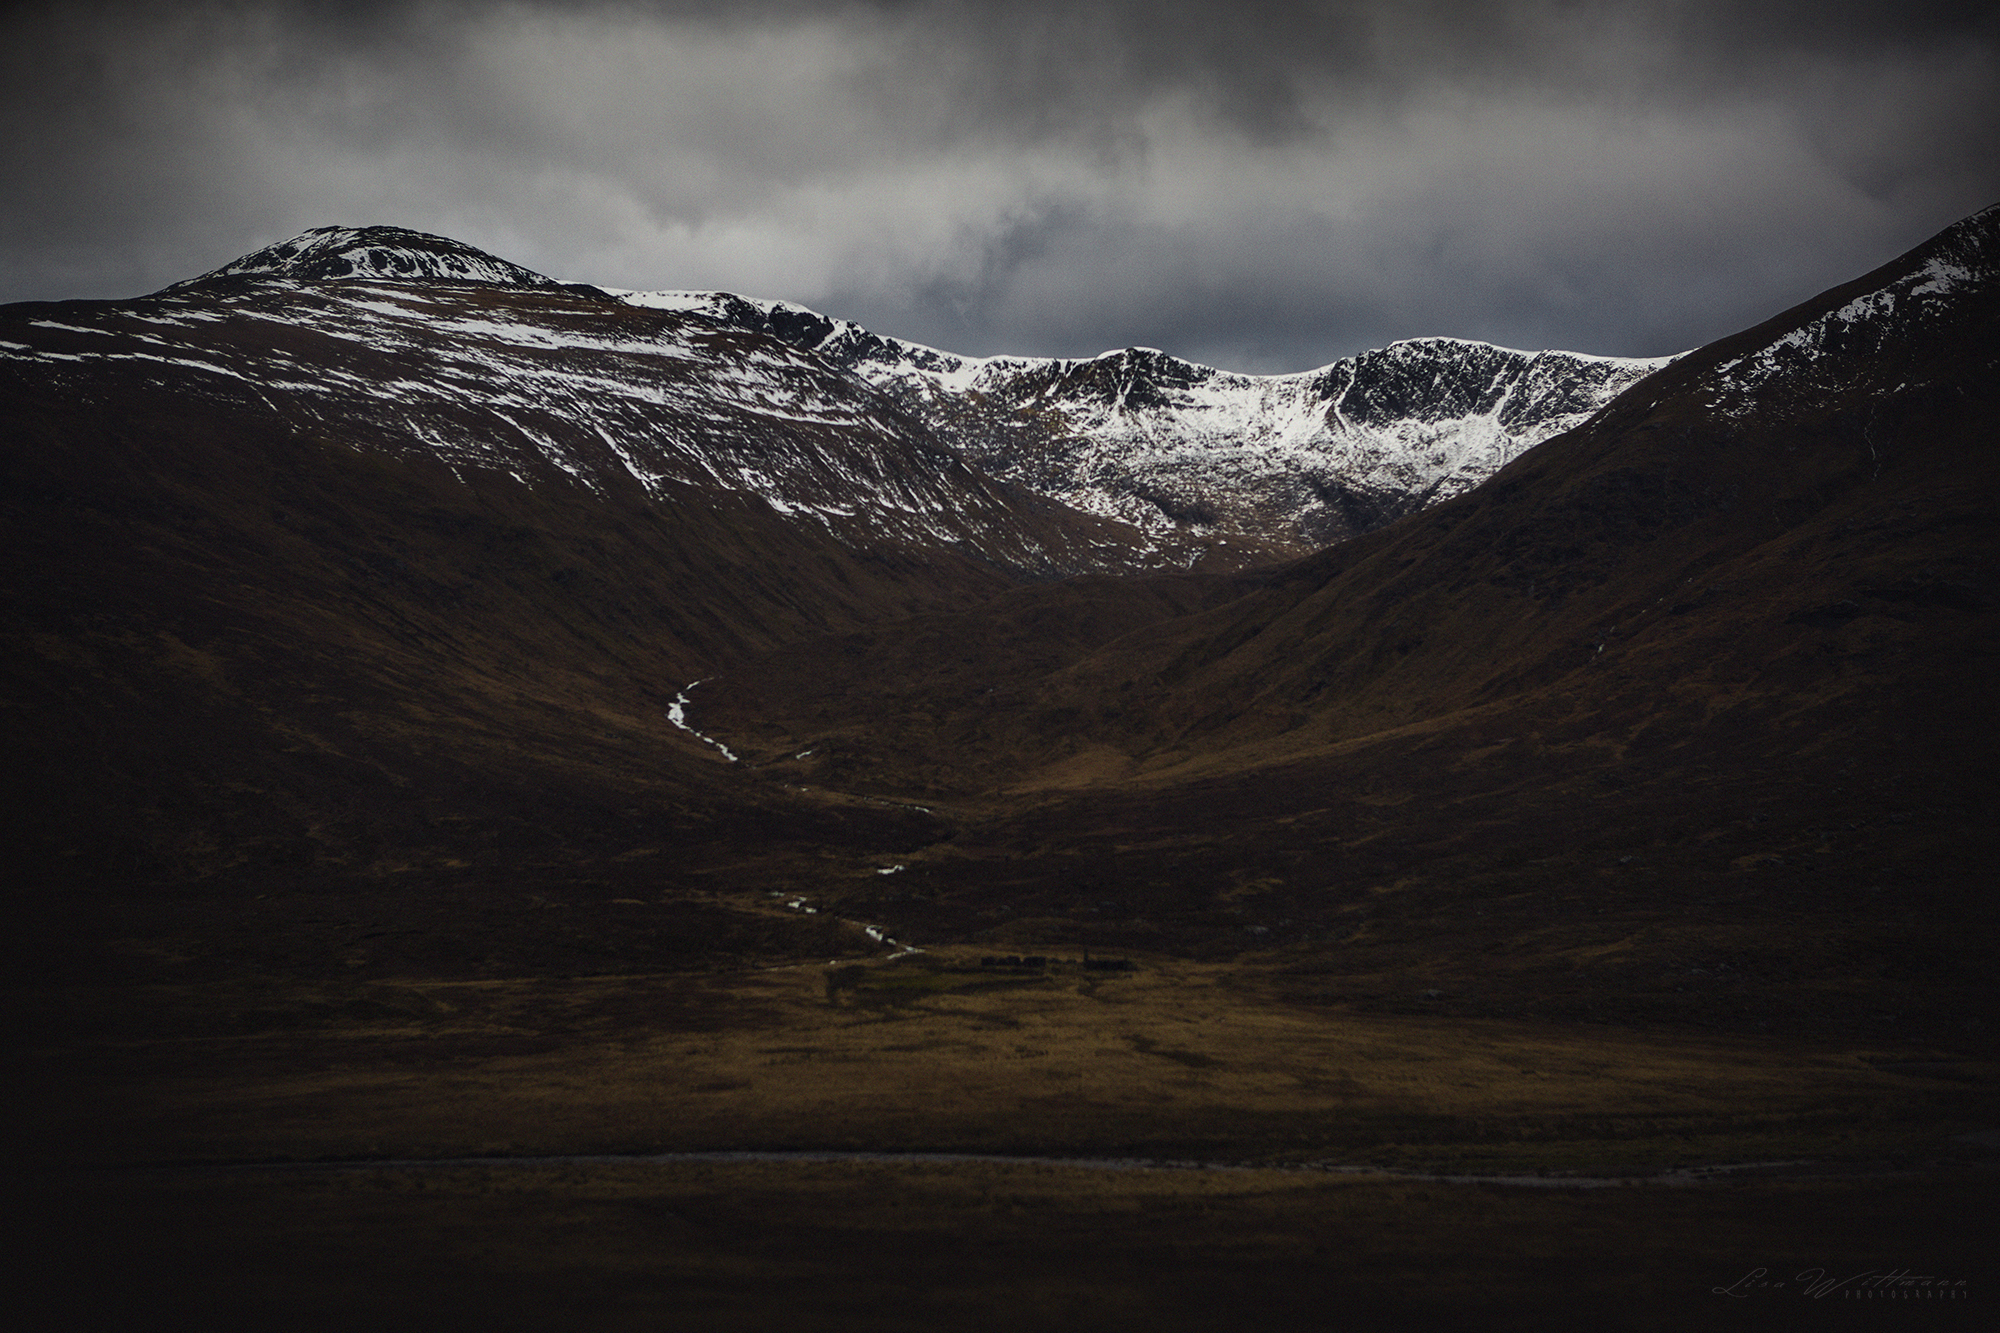 scotland_highlands_lisa_wittmann_photography_mountains_fog_water_beautiful_moody_canon_travel_paradise_fairytale_waterfall_cold_film_snow